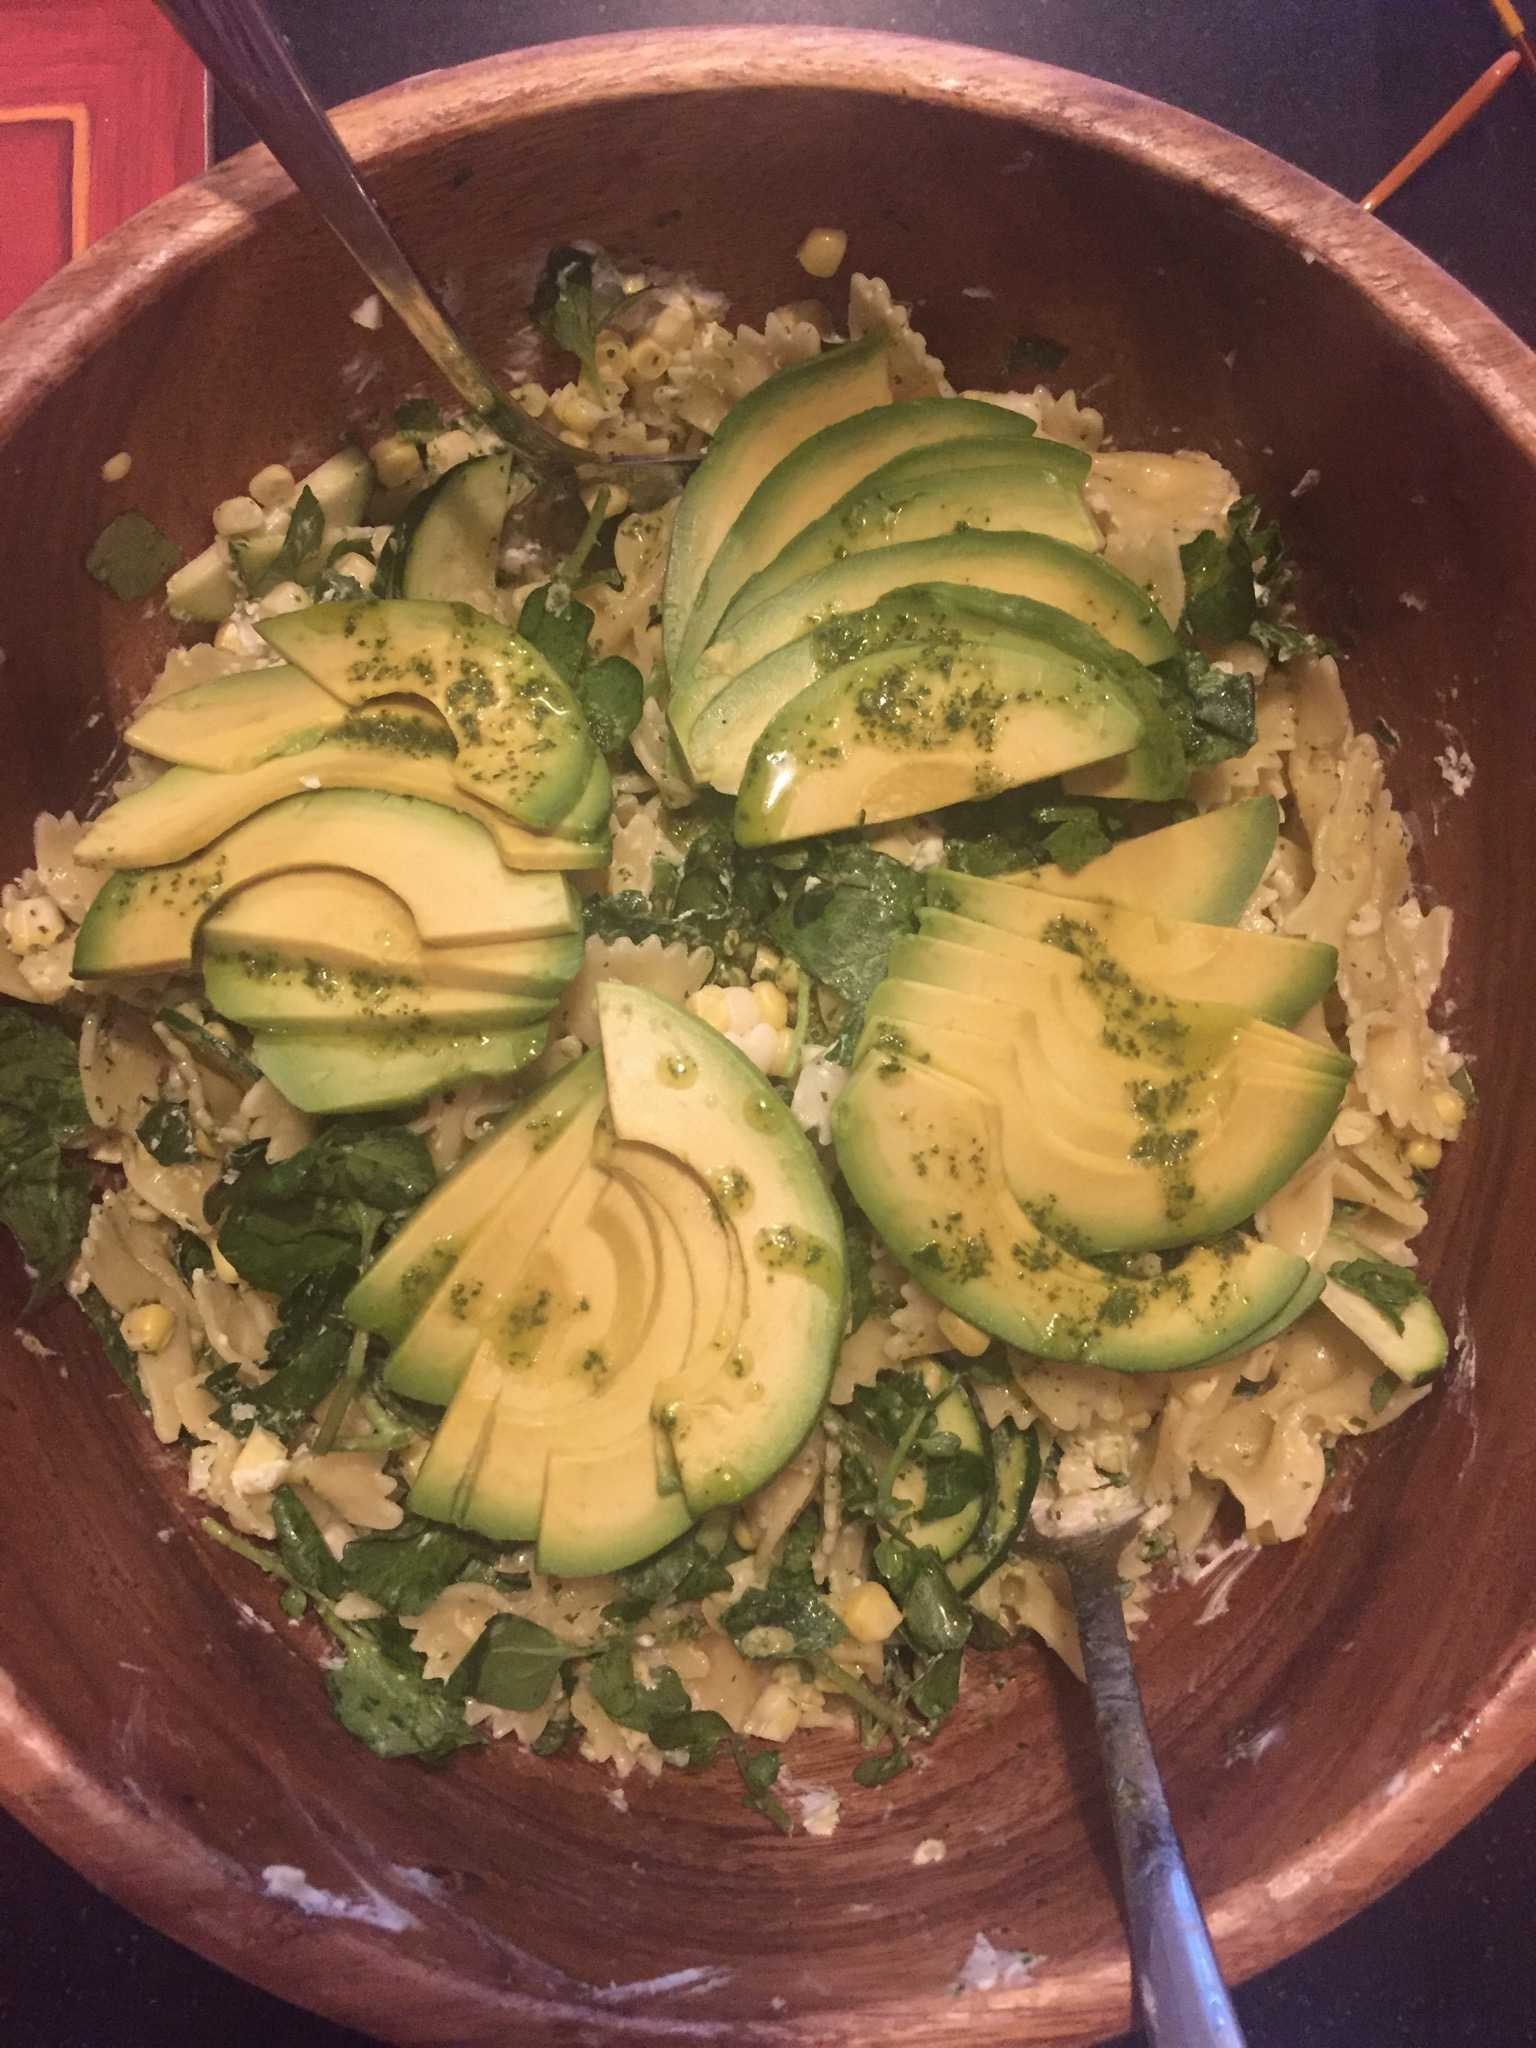 An easy vegetarian meal is always pasta.  I made this  with goat cheese, watercress and avocado.